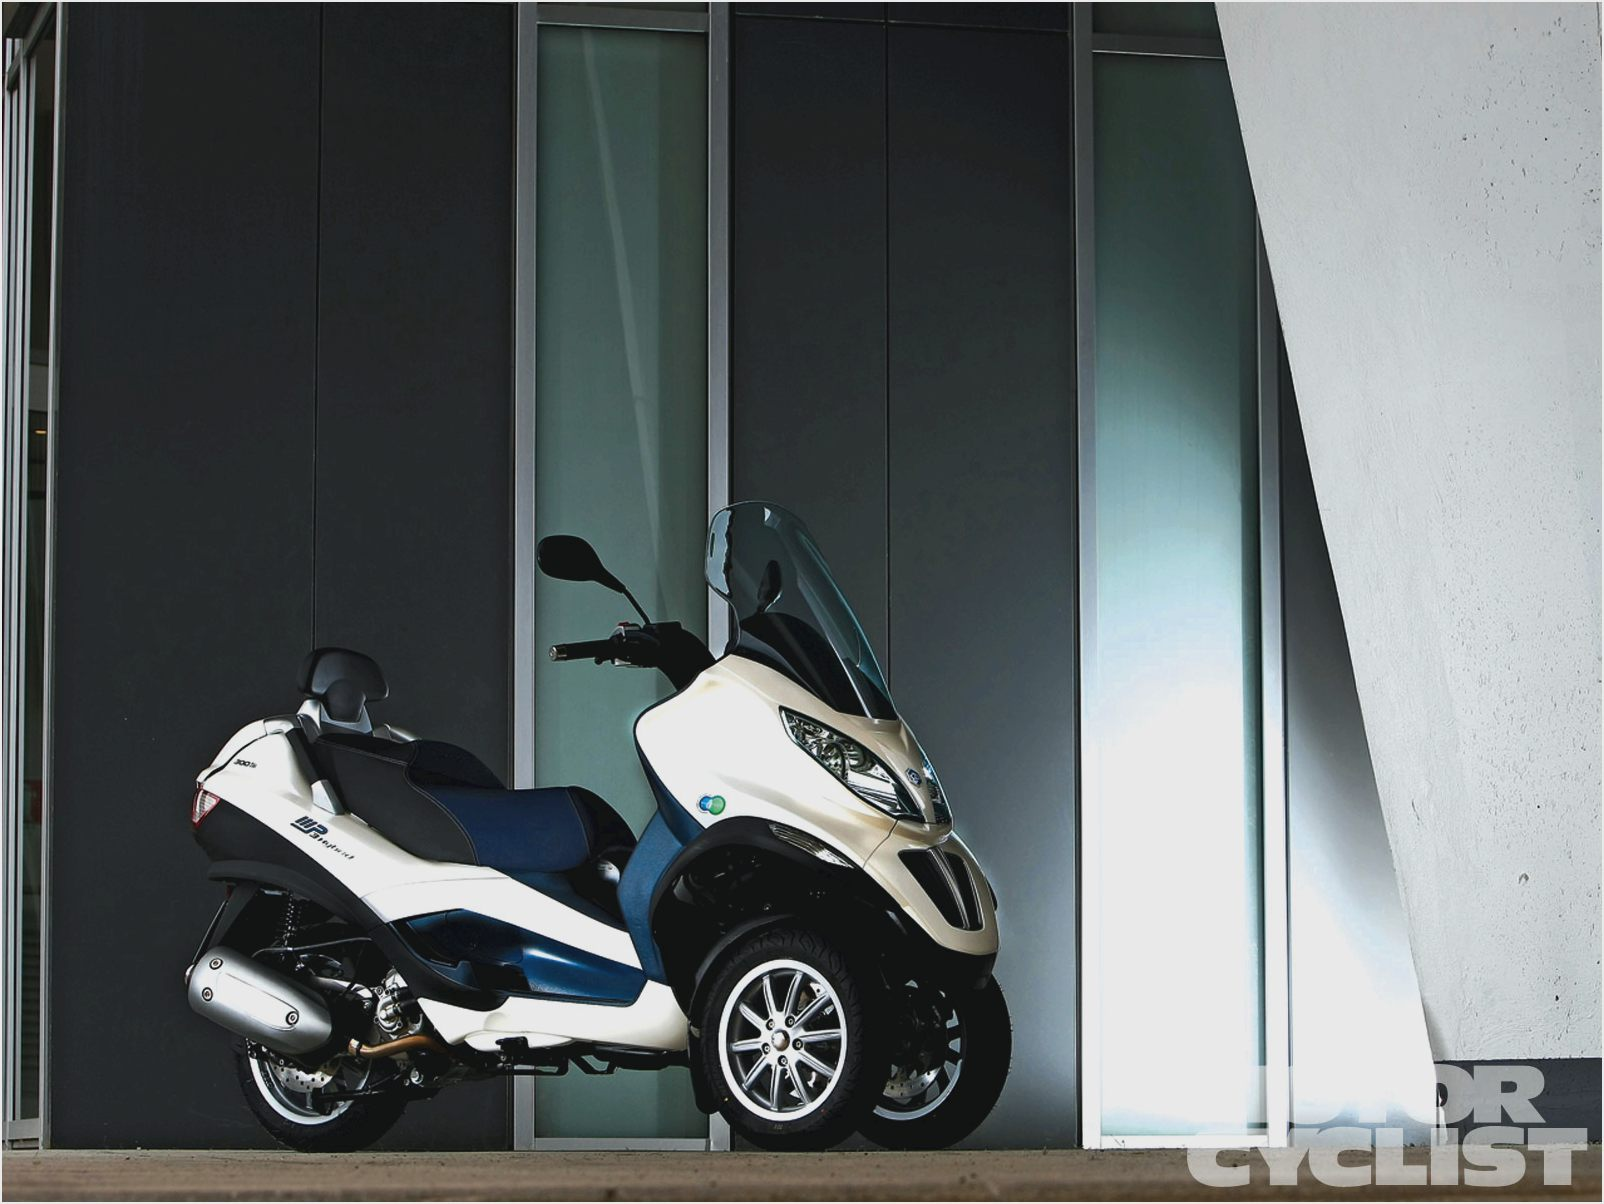 Piaggio MP3 Touring 125 images #120335